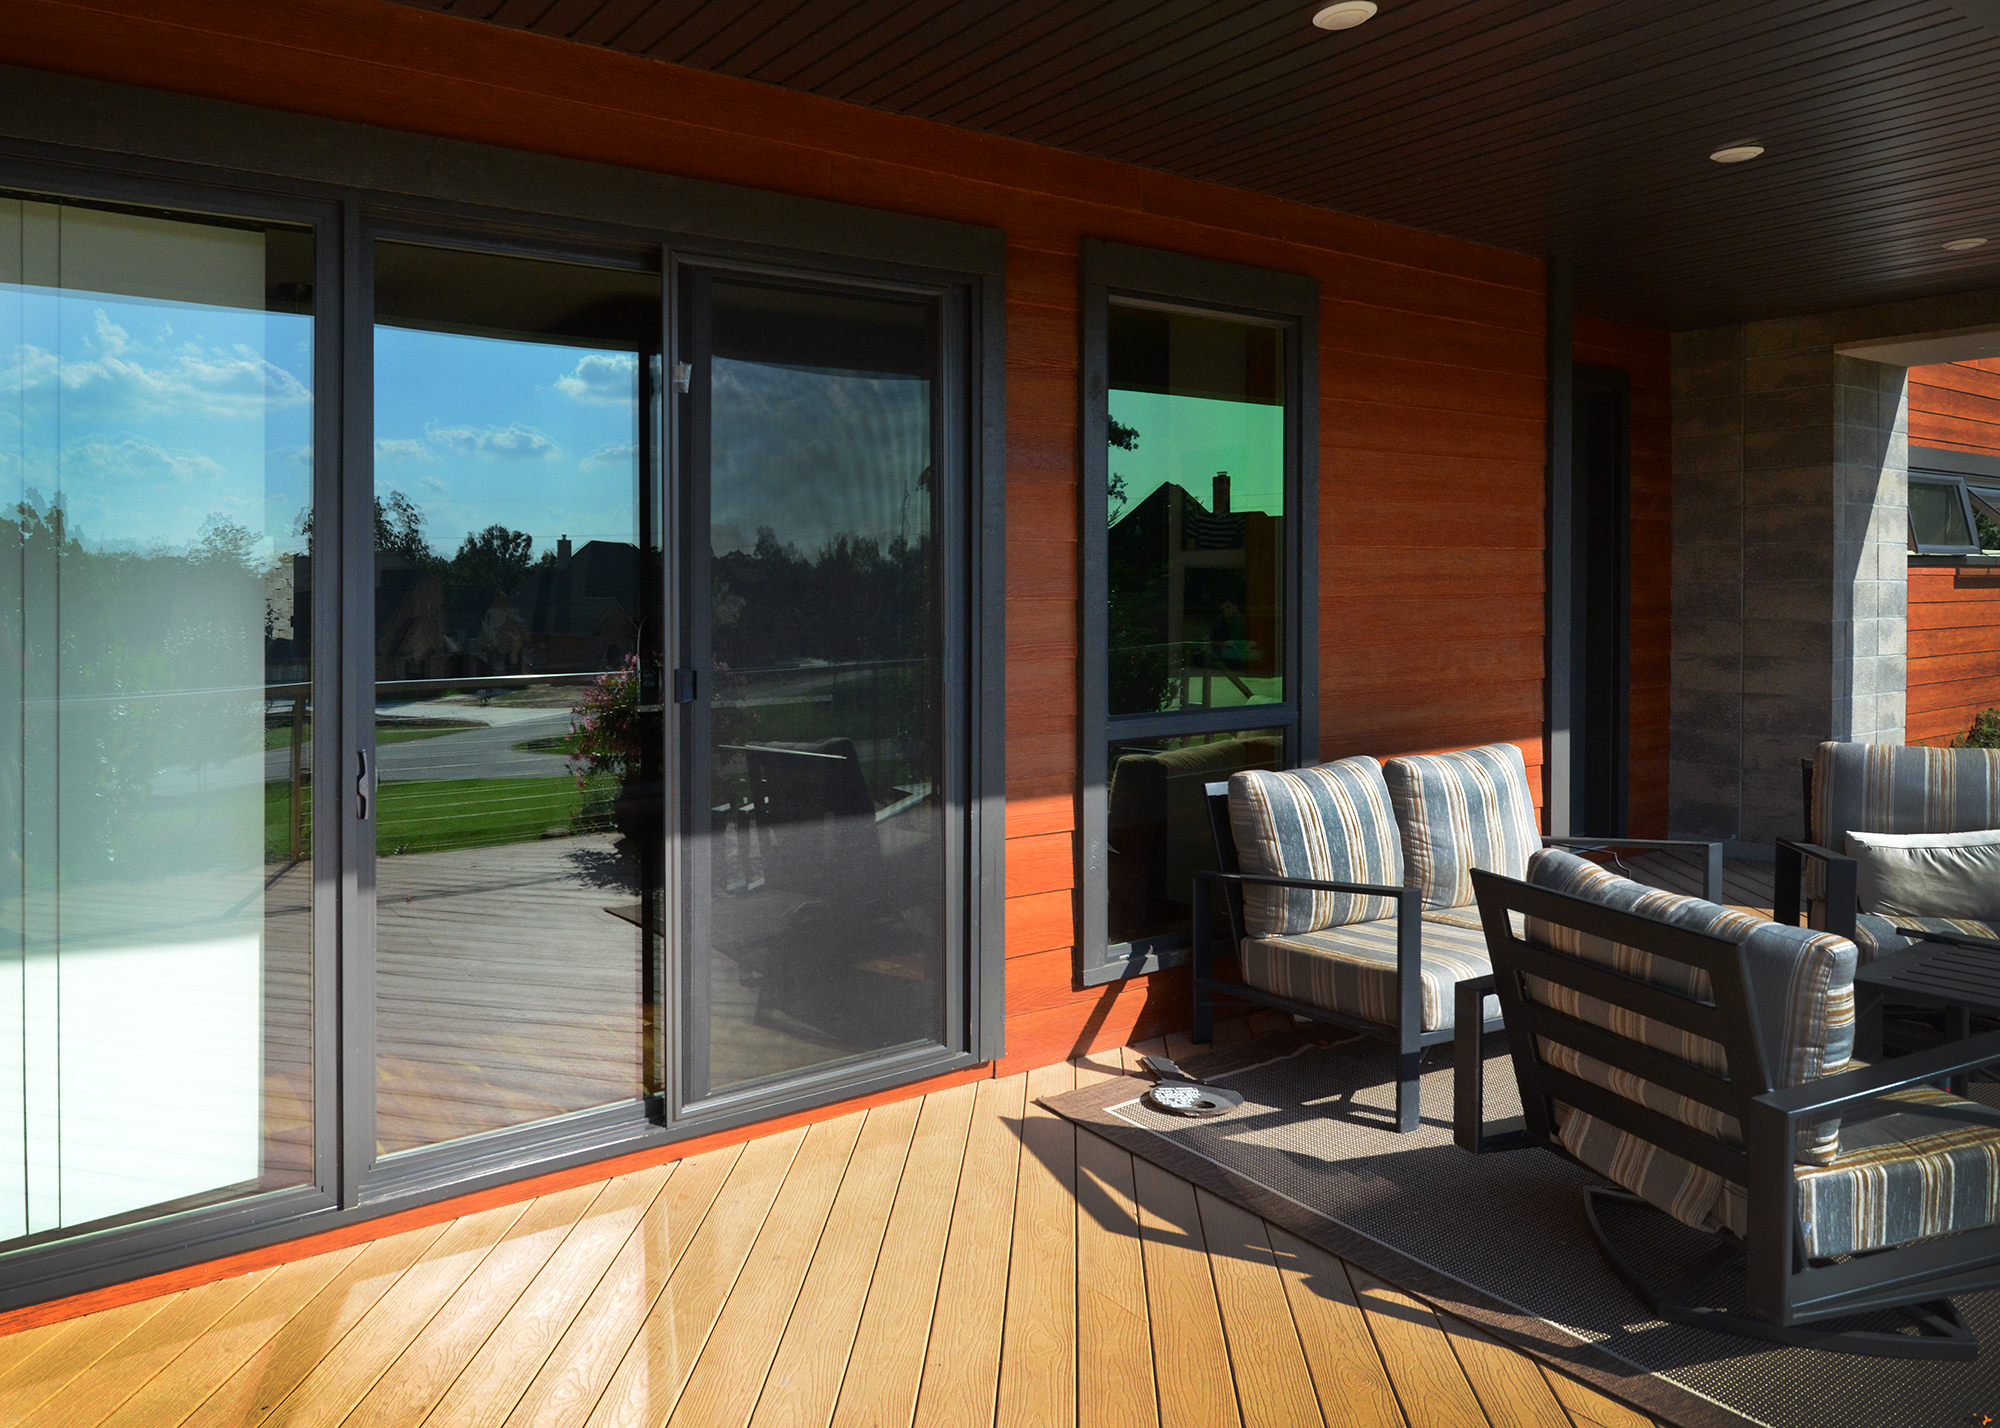 weatherbarr-Pinnacle-patio-door-exterior-bronze.jpg